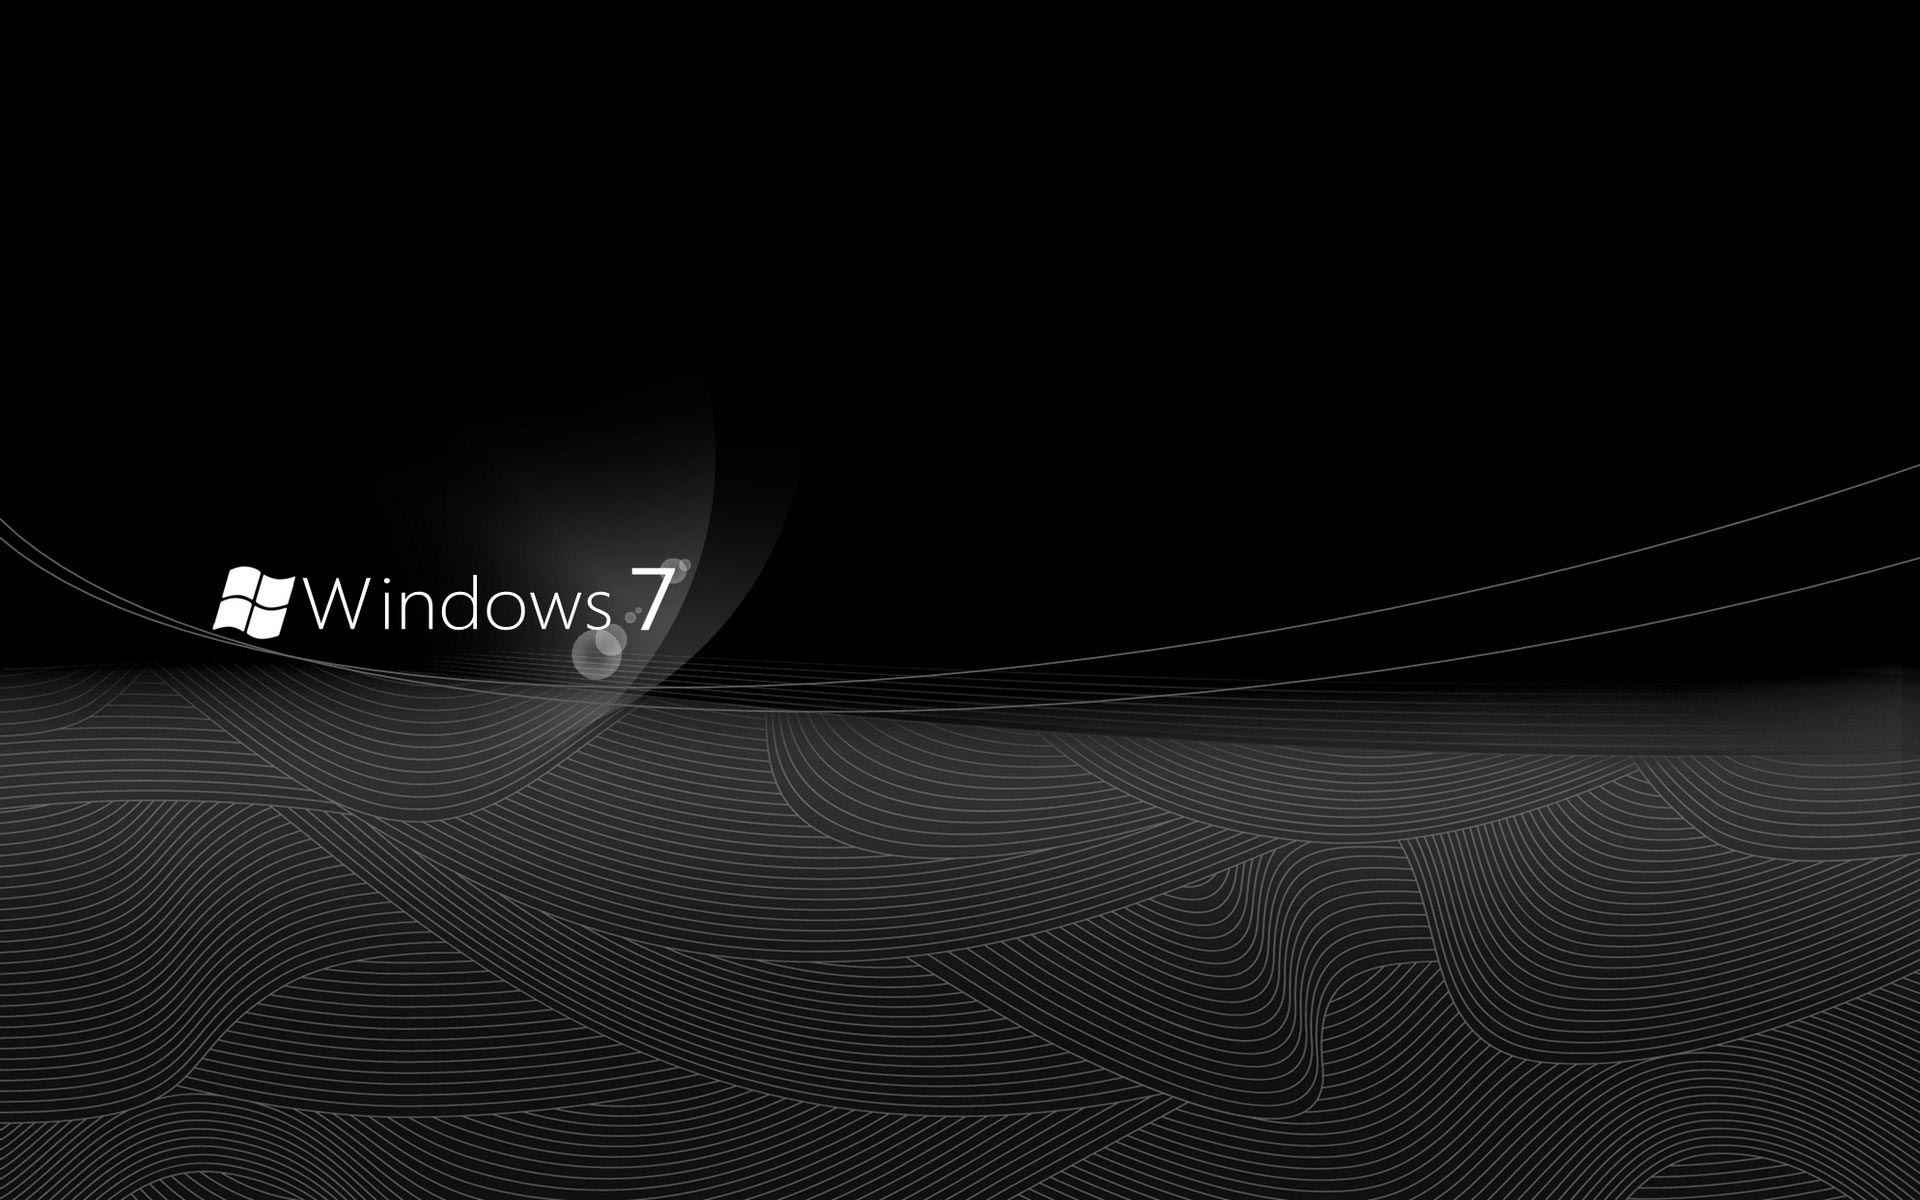 Black windows - Windows 7 Elegant Black Desktop Wallpaper And Make This Wallpaper For